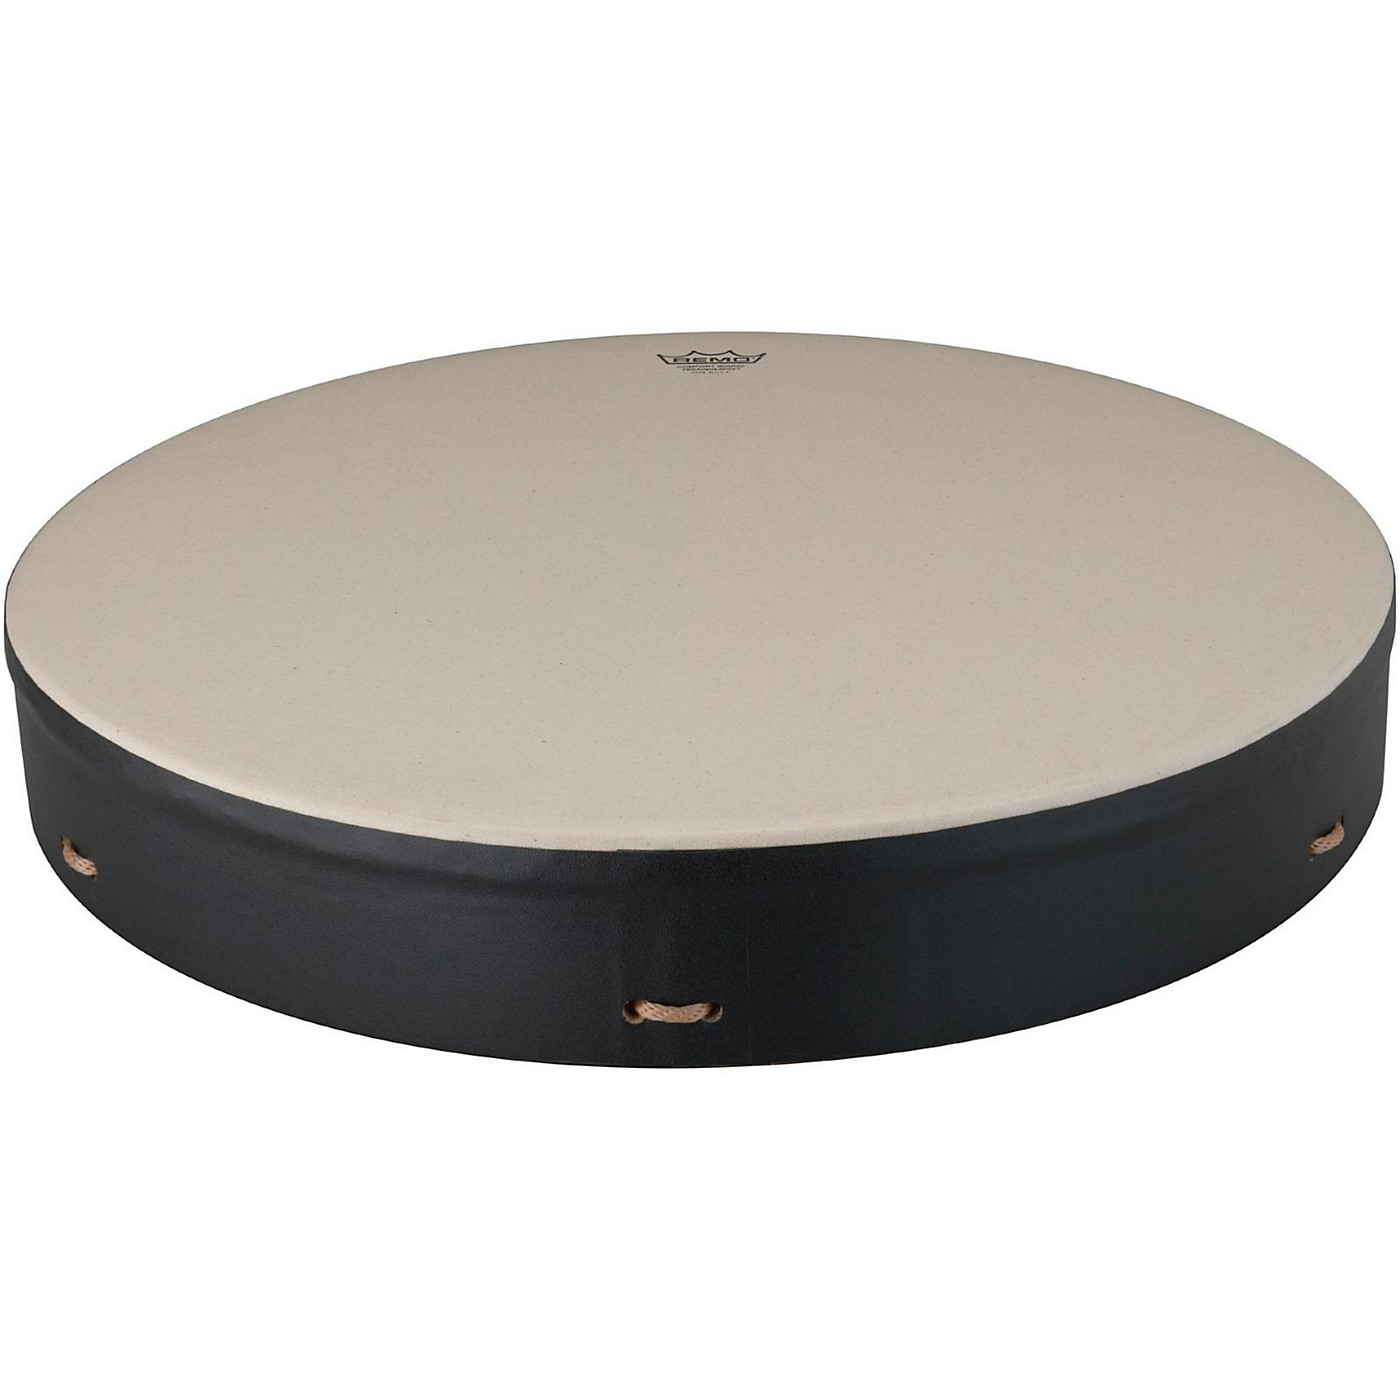 Remo Buffalo Drum with Comfort Sound Technology thumbnail